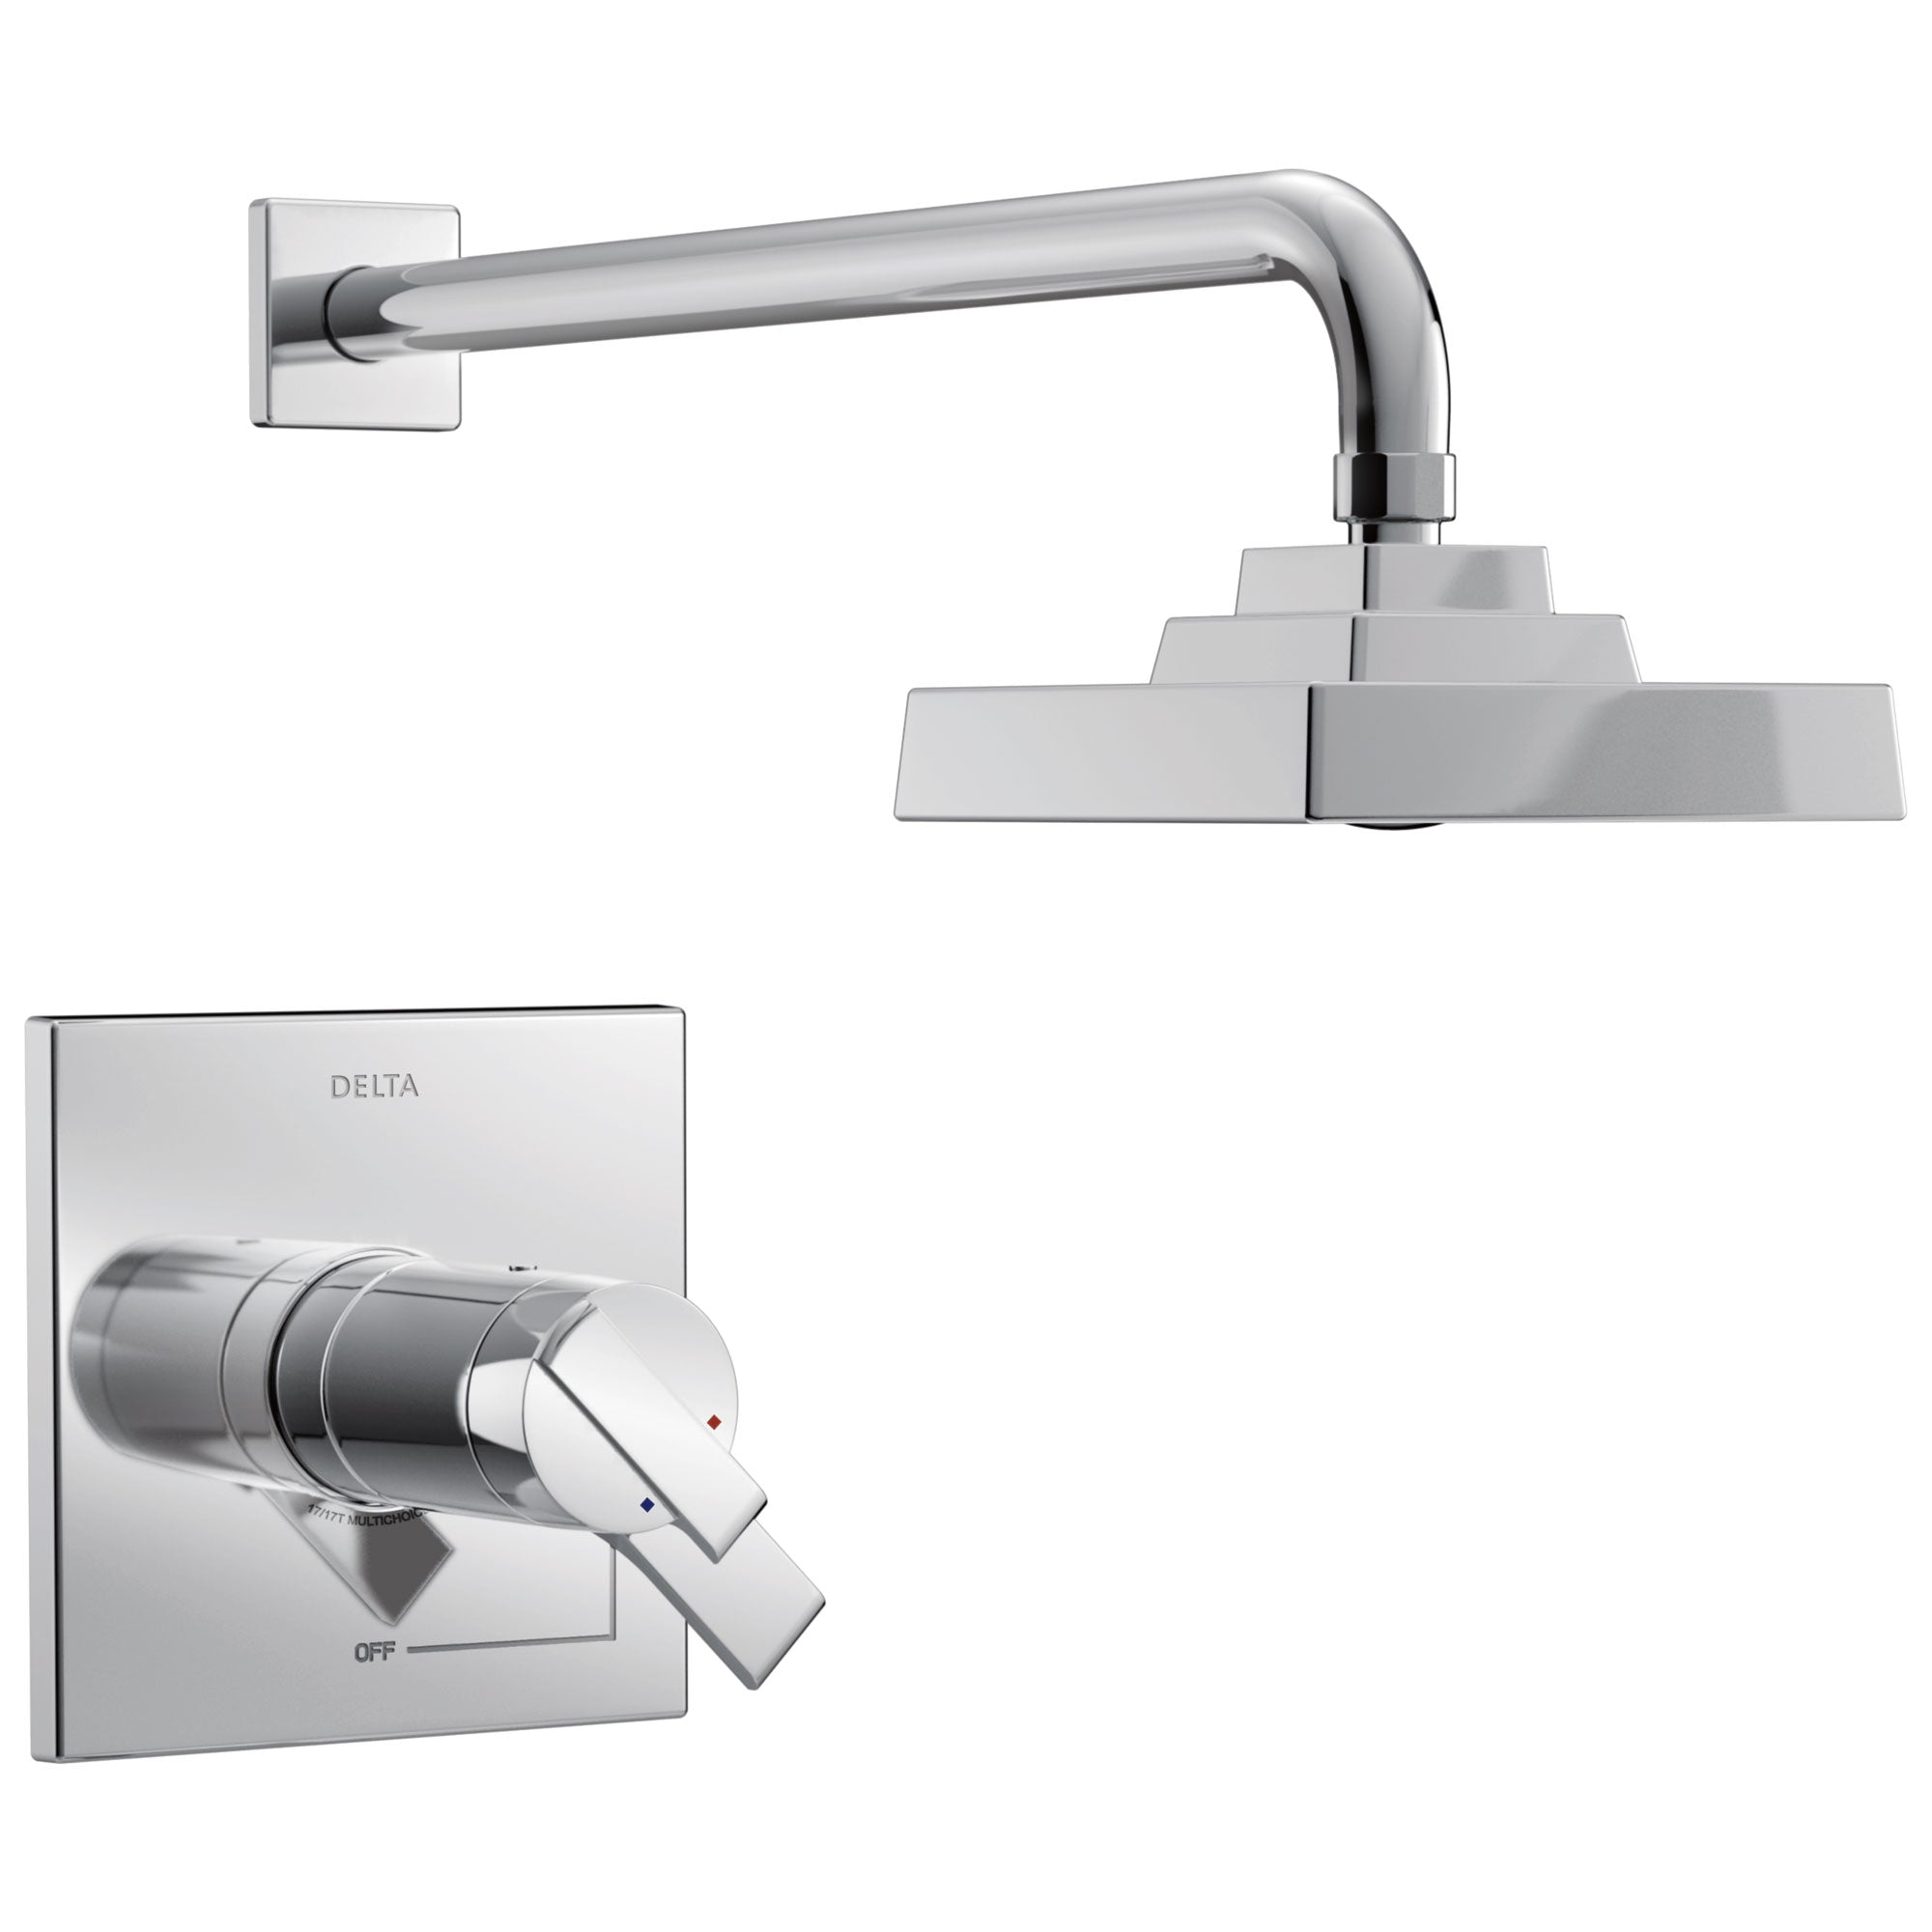 Delta Ara Collection Chrome TempAssure 17T Series Watersense Thermostatic Modern Dual Control Shower only Faucet Trim Kit (Requires Valve) DT17T267